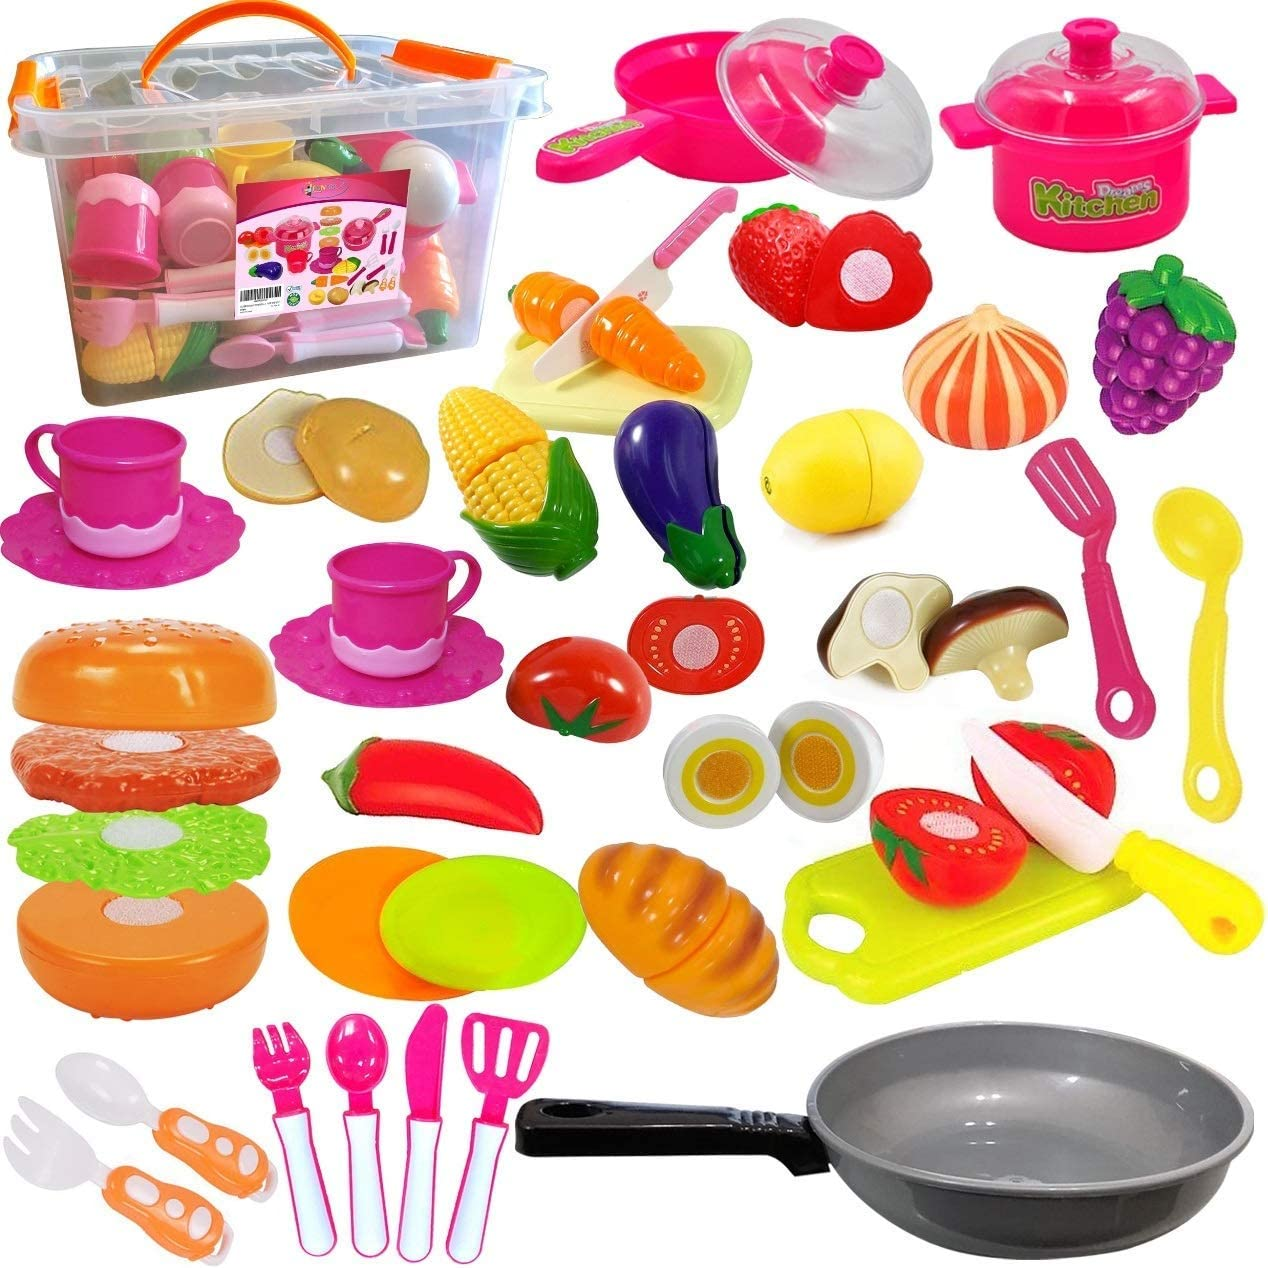 FUNERICA Add-More-Cutting-Food Bundle. Add The Play Pot Full of Beautiful Play Fruits and Veggies